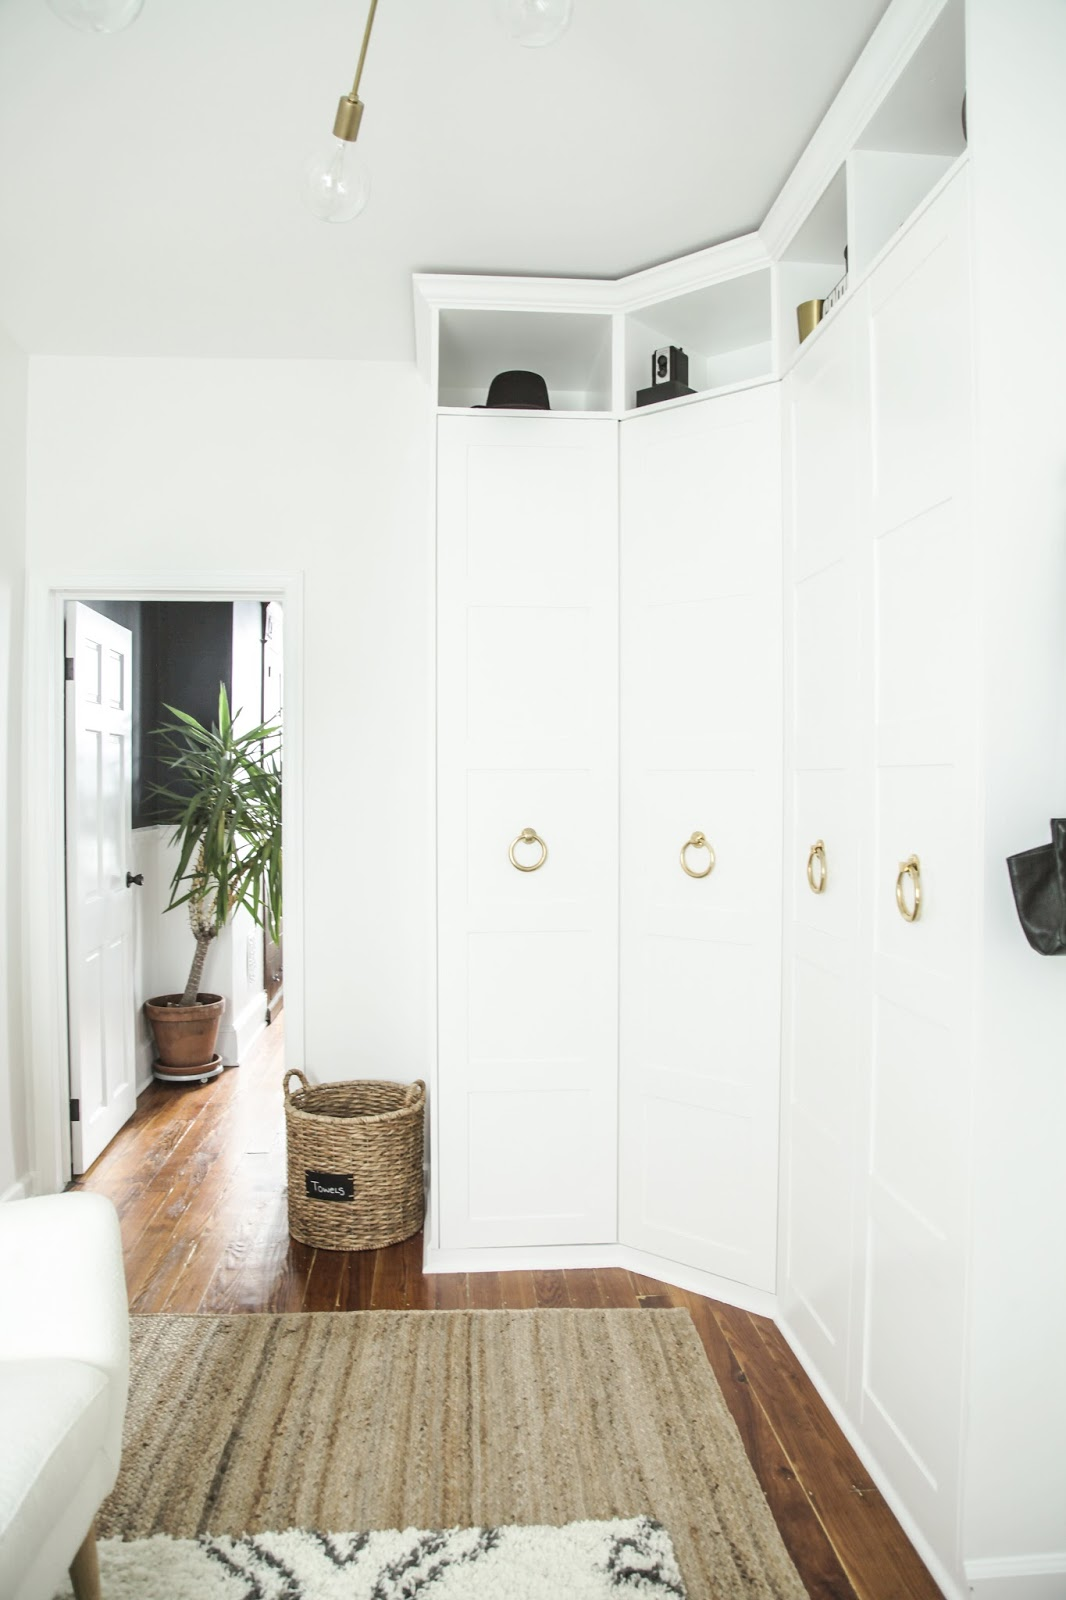 Ikea Pax Wardrobe Hacks That Look Seamless And Built In Apartment Therapy